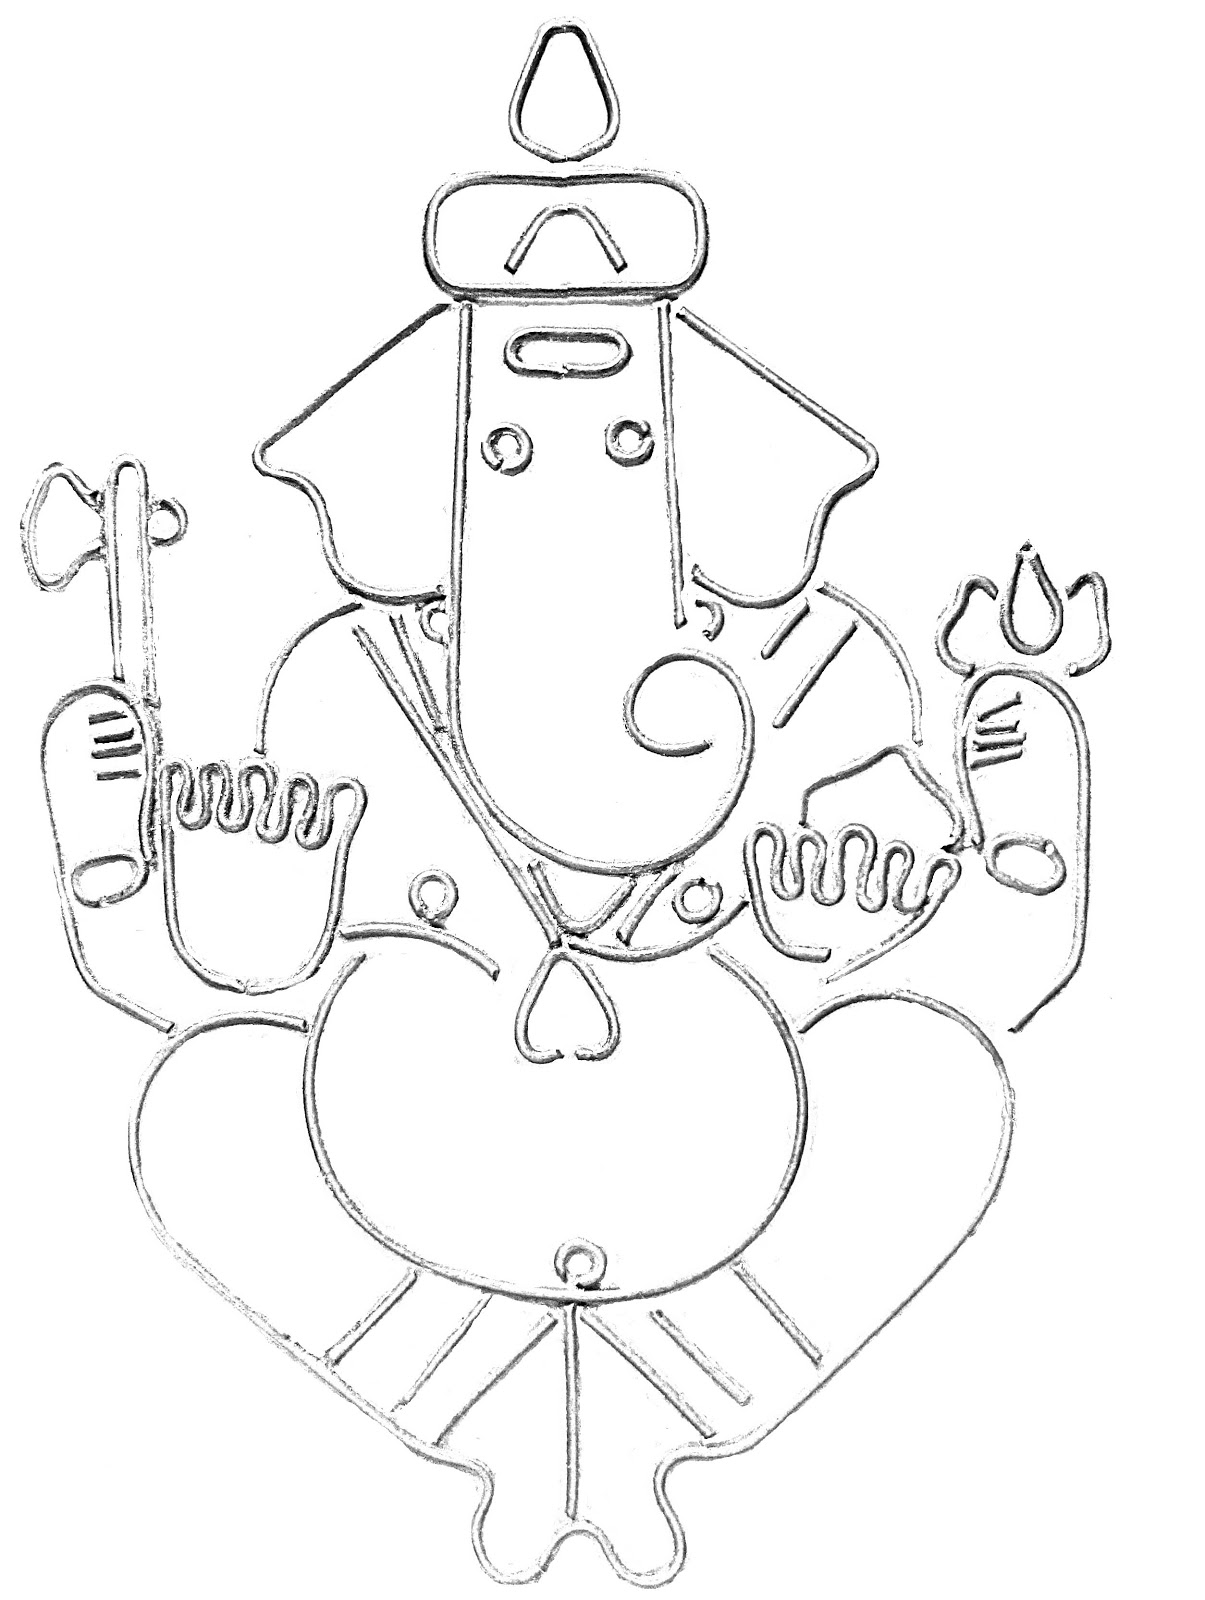 Line Drawing Ganesha : Ganesh line drawing